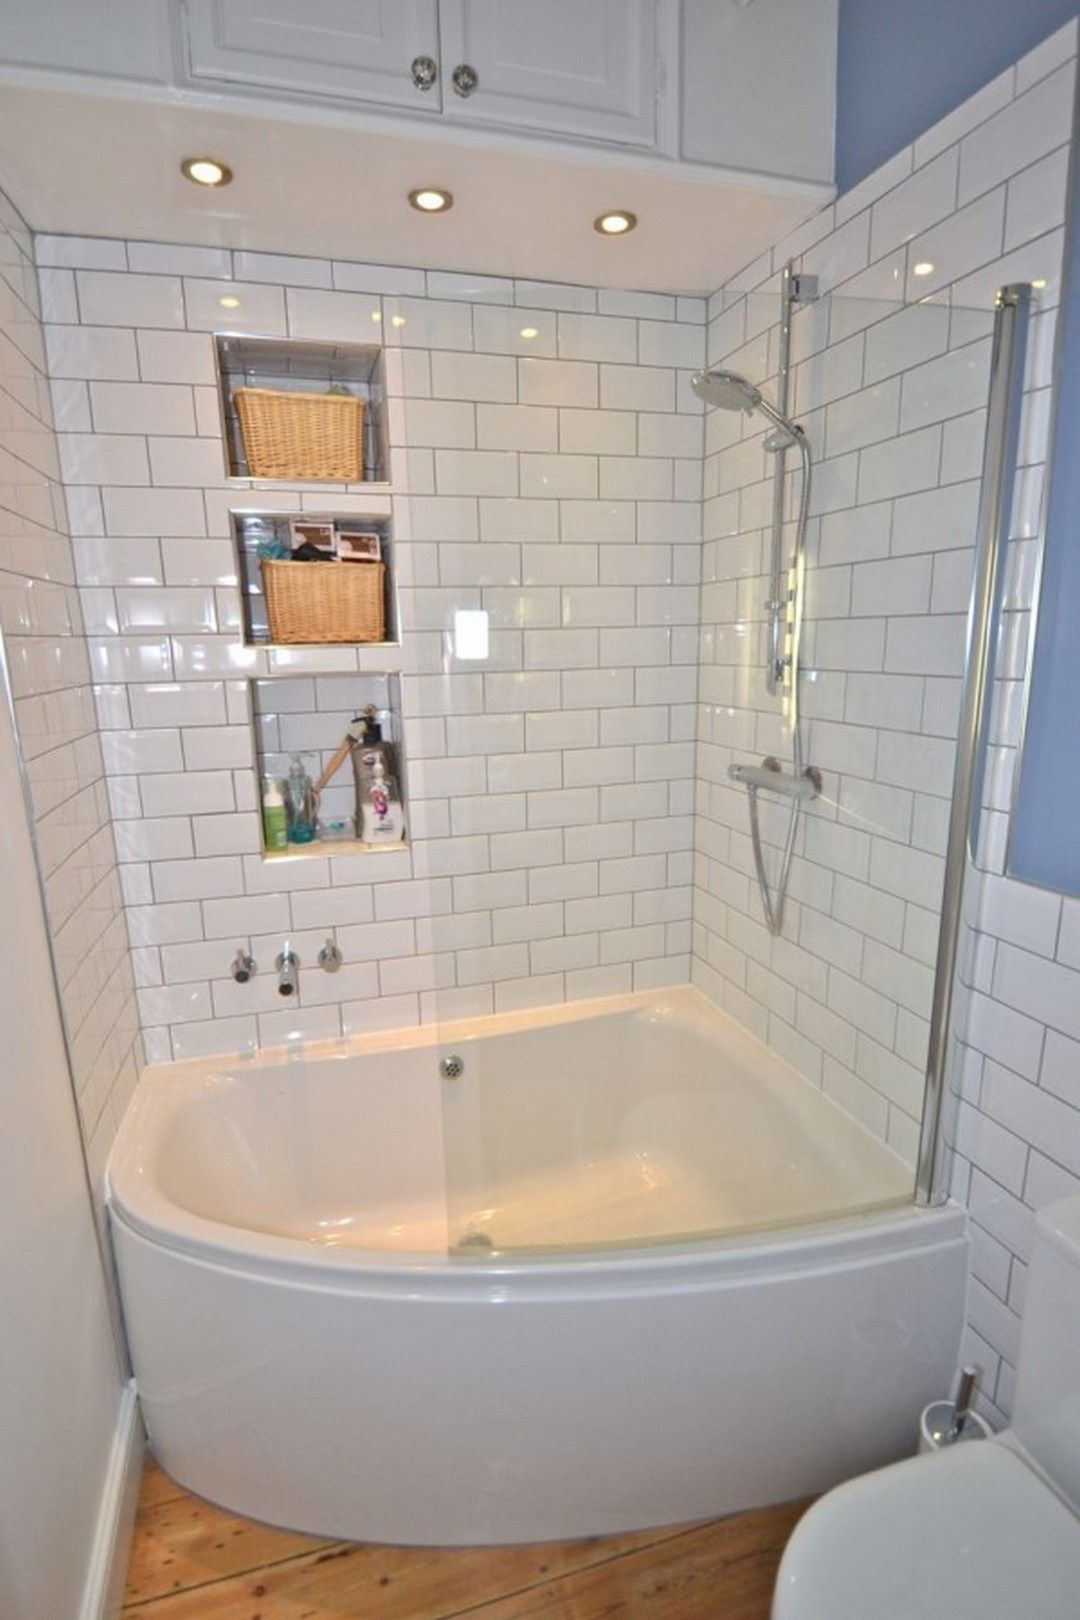 99 Small Bathroom Tub Shower Combo Remodeling Ideas 51 Bathroom Tub Shower Combo